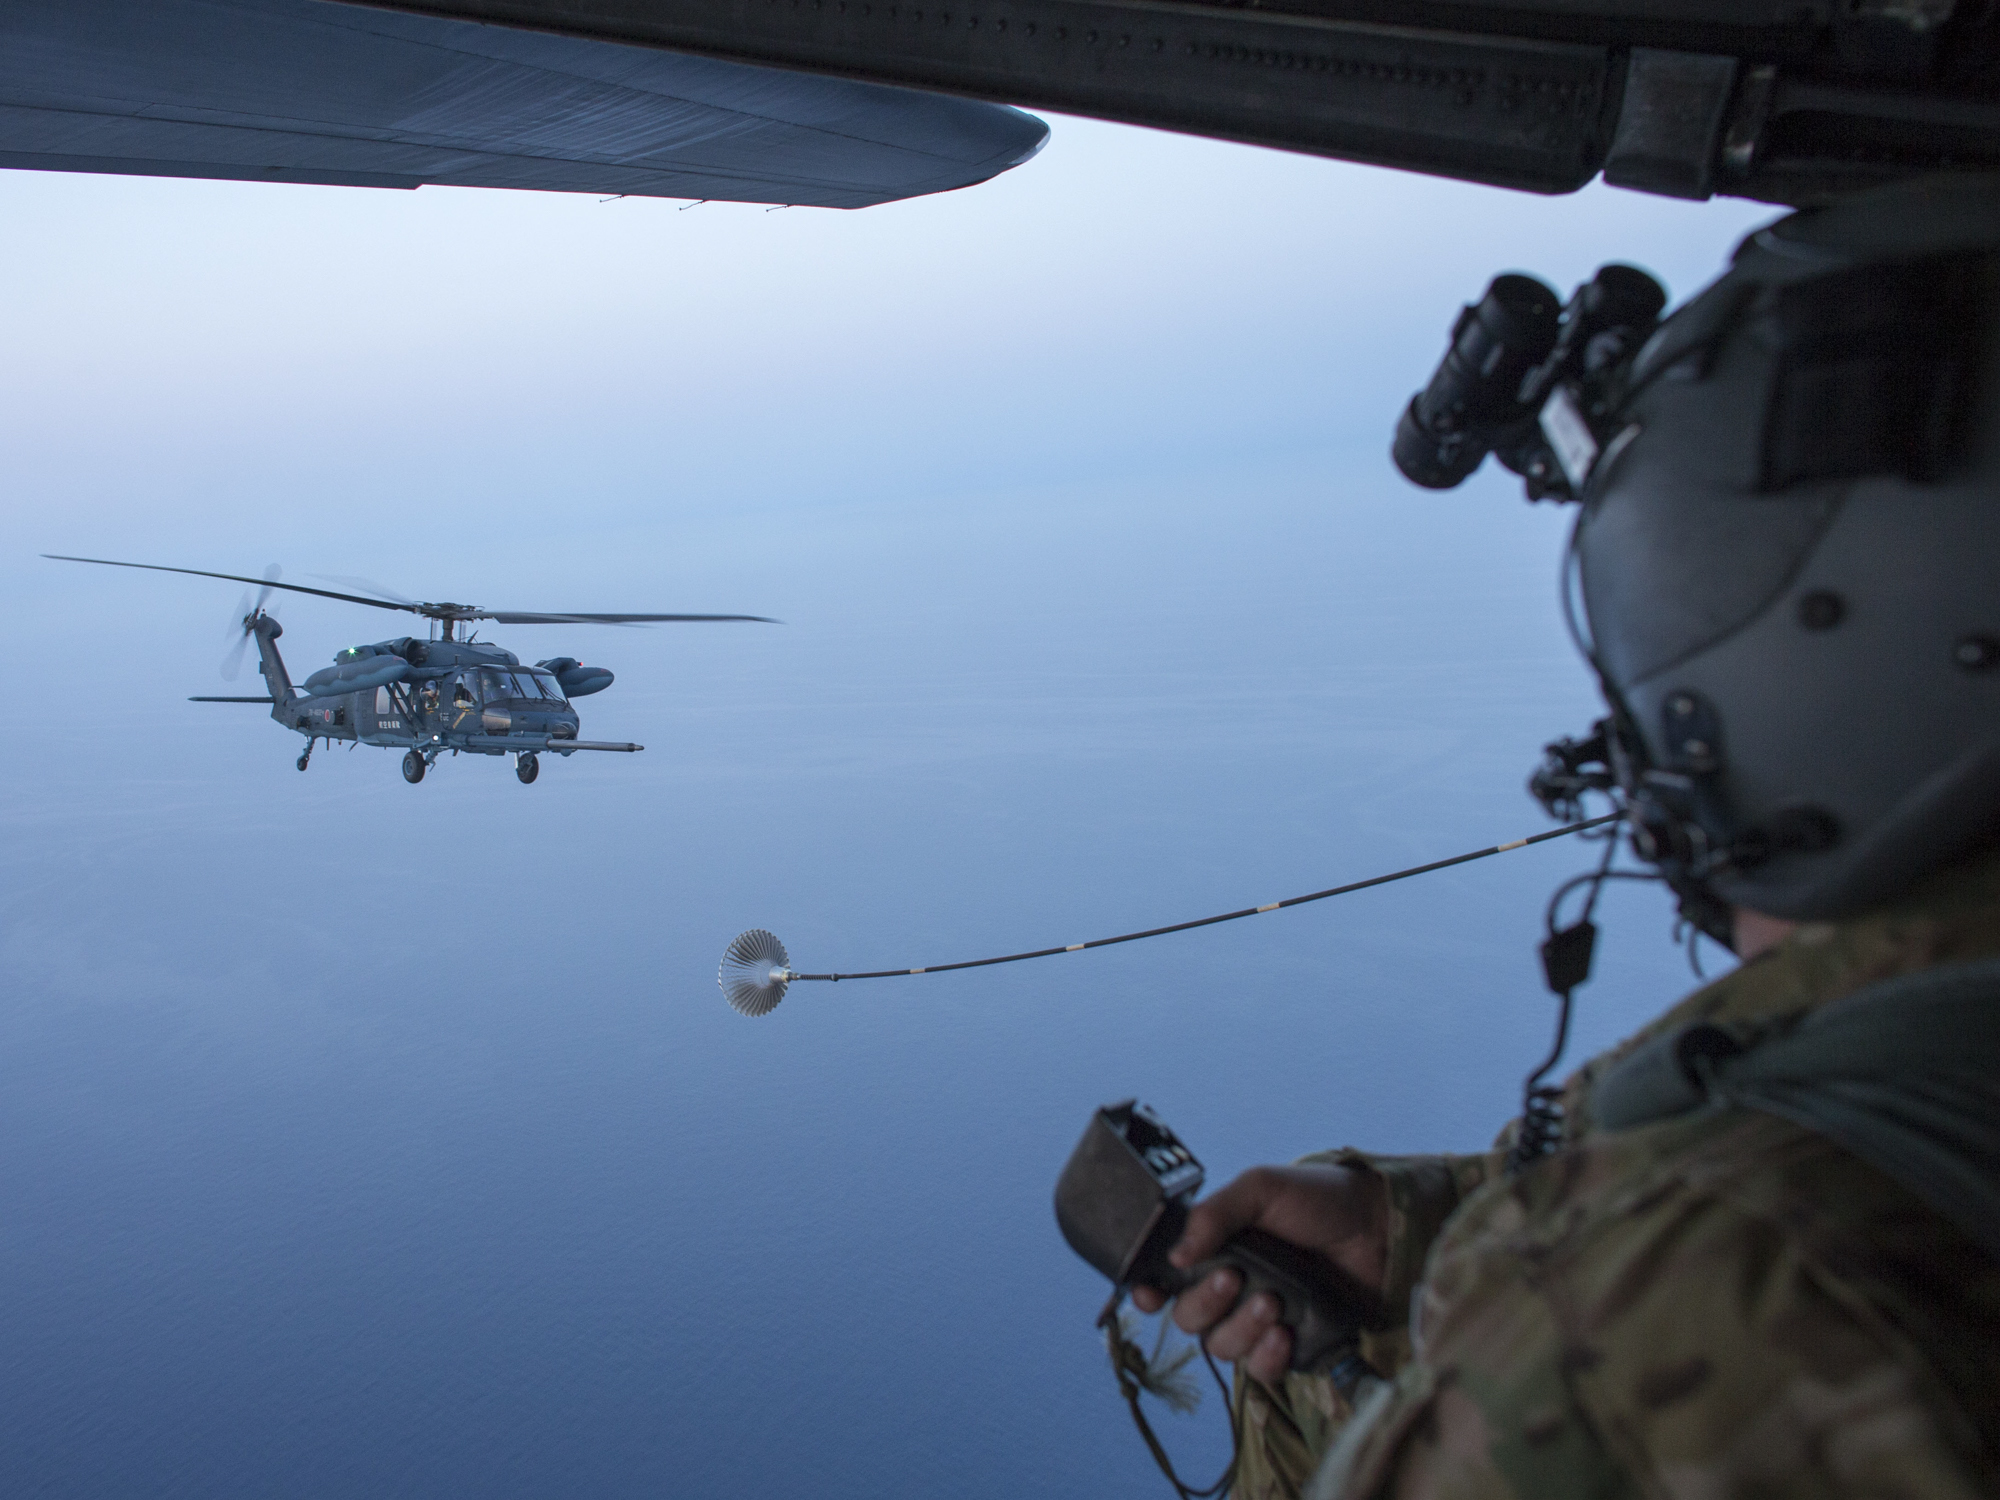 helicopter electrical lineman with Exercise Teak Jet on AGVsaWNvcHRlciAgbGluZW1hbg furthermore Article 5c8942c7 9aab 574a Bf36 73545c254f57 besides 353rd Sog And Jasdf  plete Exercise Teak Jet moreover Buckle Up For Sce Helicopter Pilots Has A Whole Different Meaning additionally Electric 2Clineman.